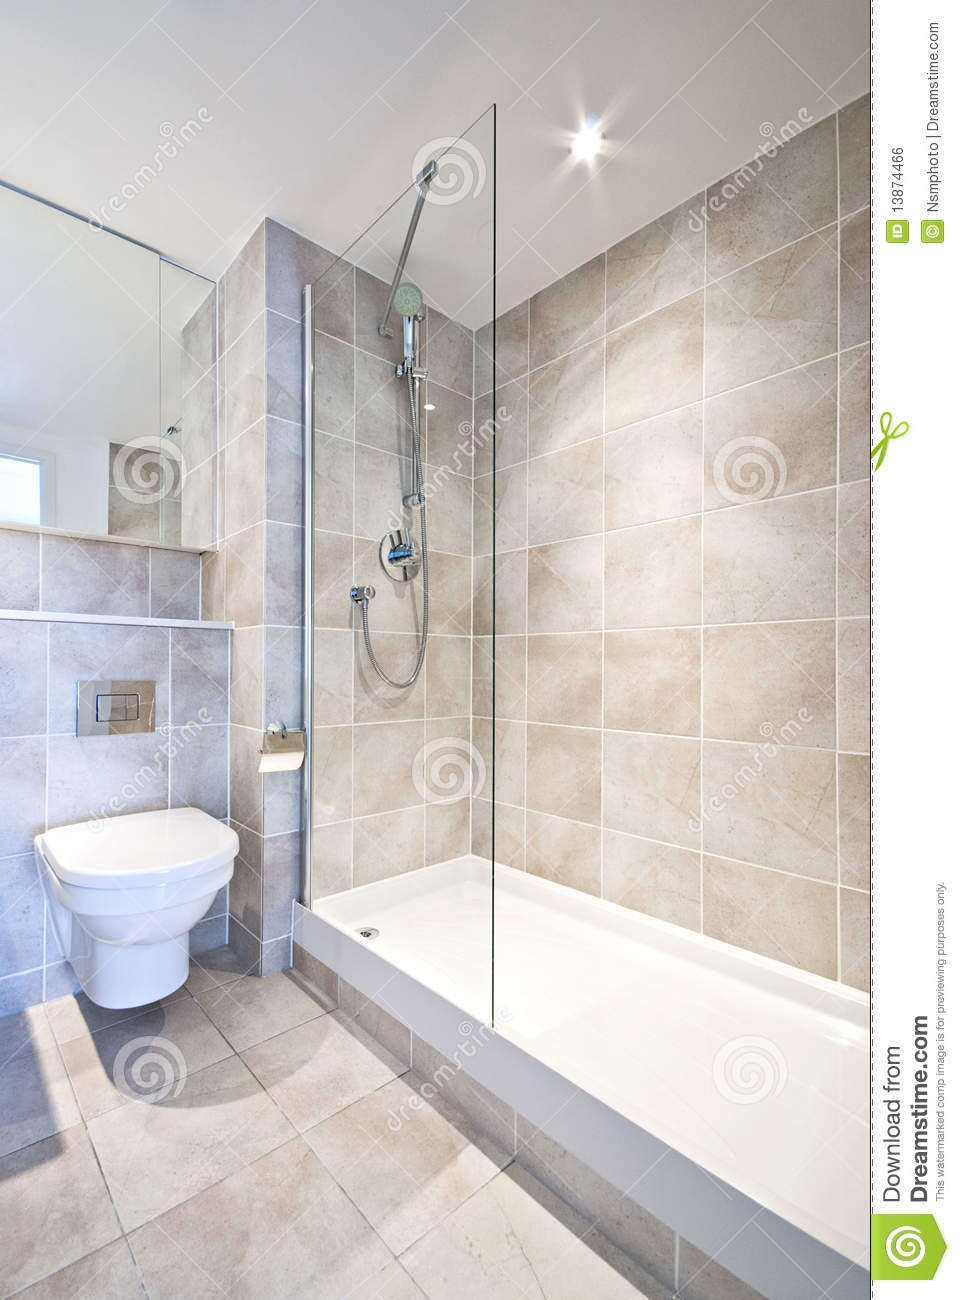 Modern en suite bathroom with large shower royalty free stock image image 13874466 Bathroom tile showers